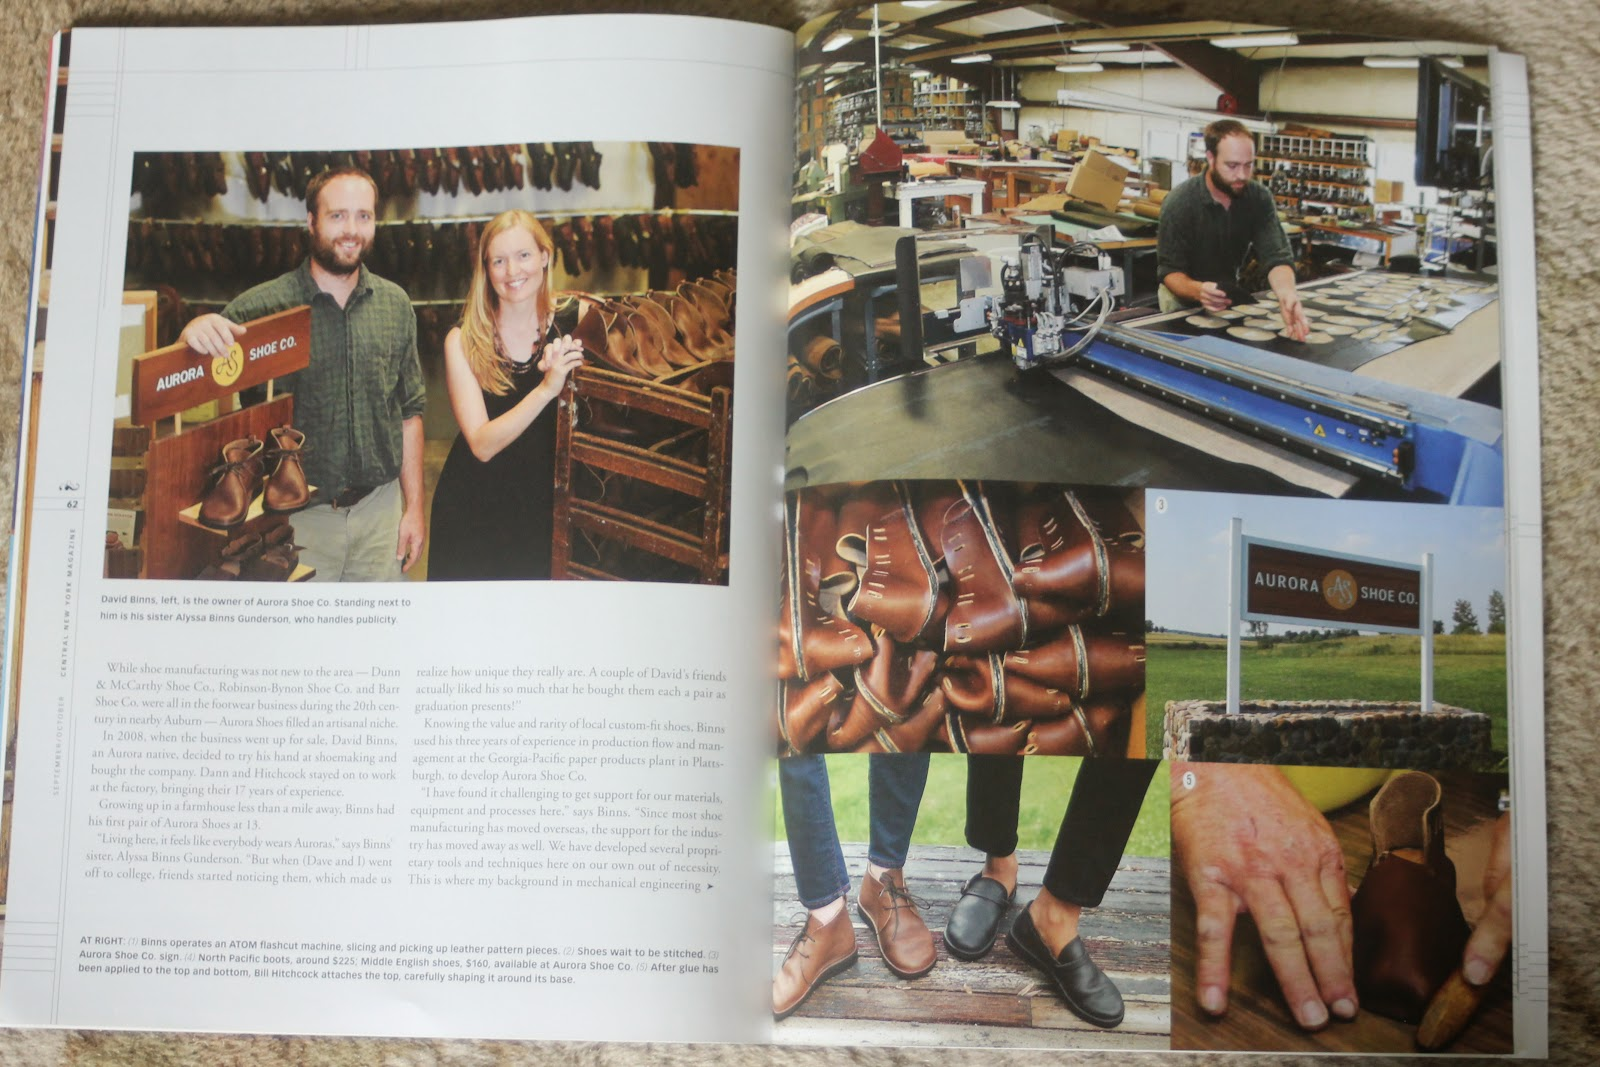 David Binns, Alyssa Binns Gunderson, shoe production